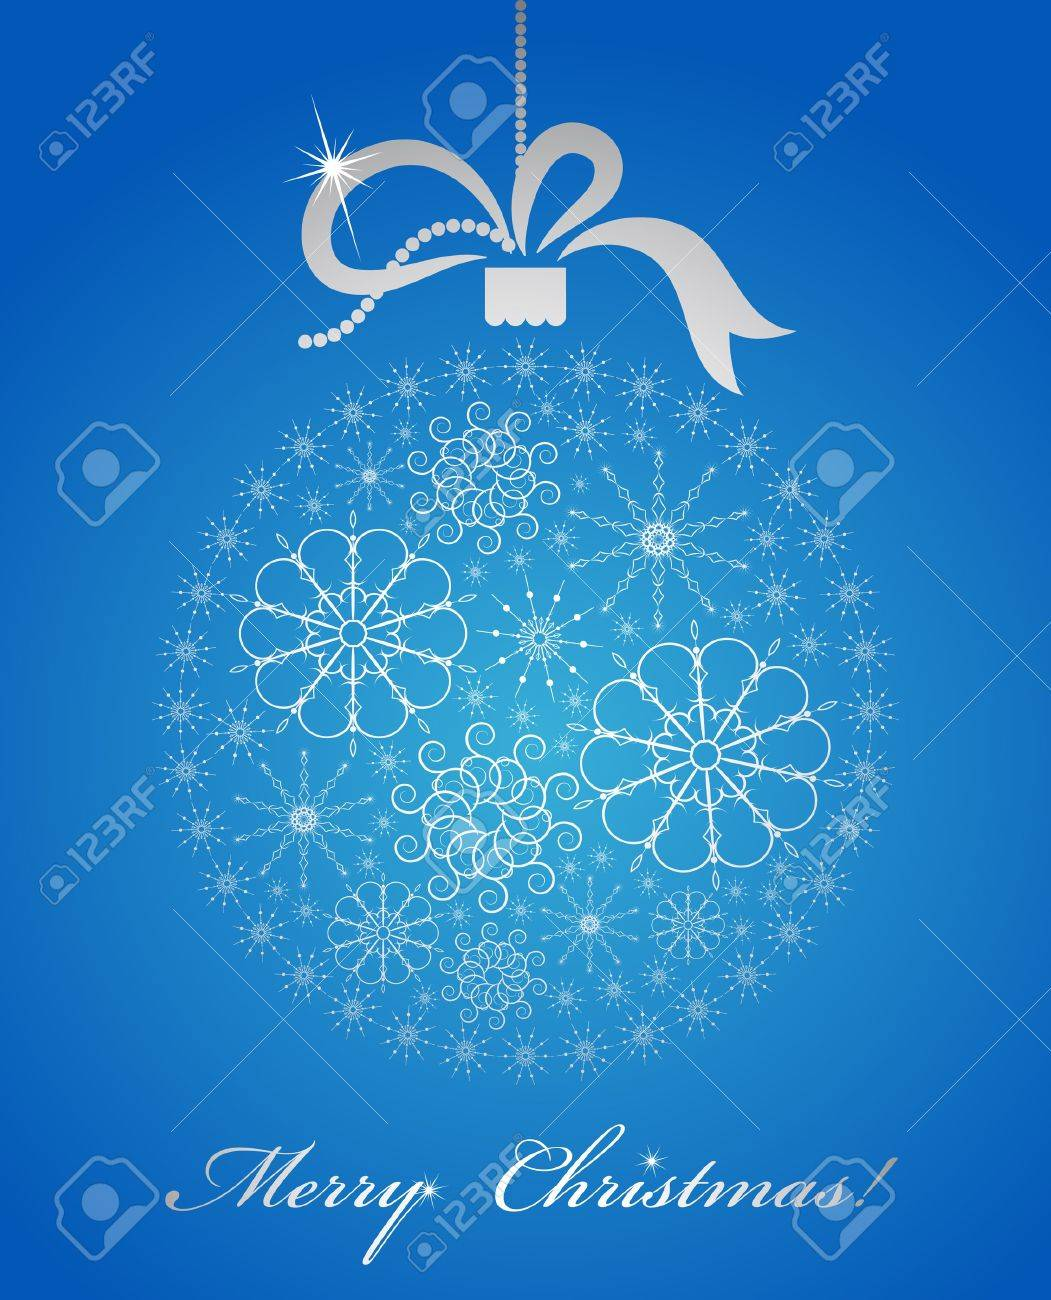 The decorative ball with snowflakes and bow Stock Photo - 11519146